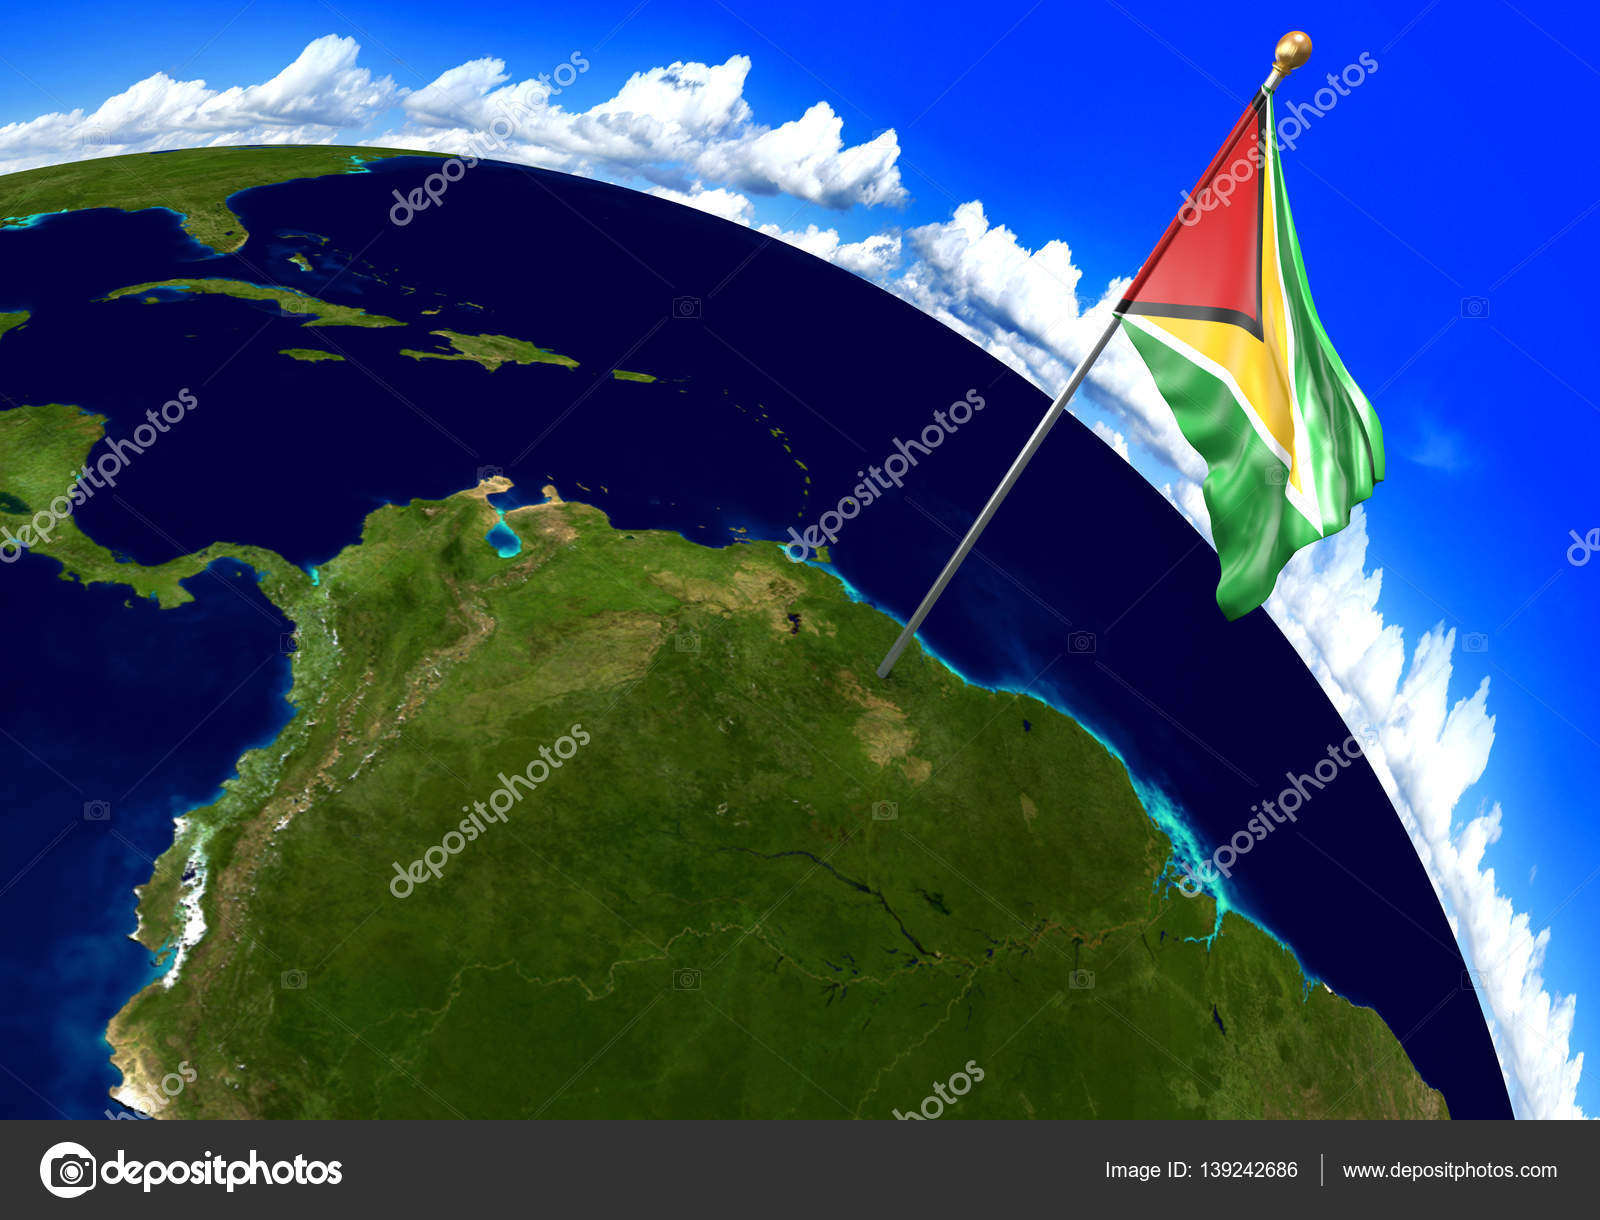 Guyana Location On World Map.Guyana National Flag Marking The Country Location On World Map 3d